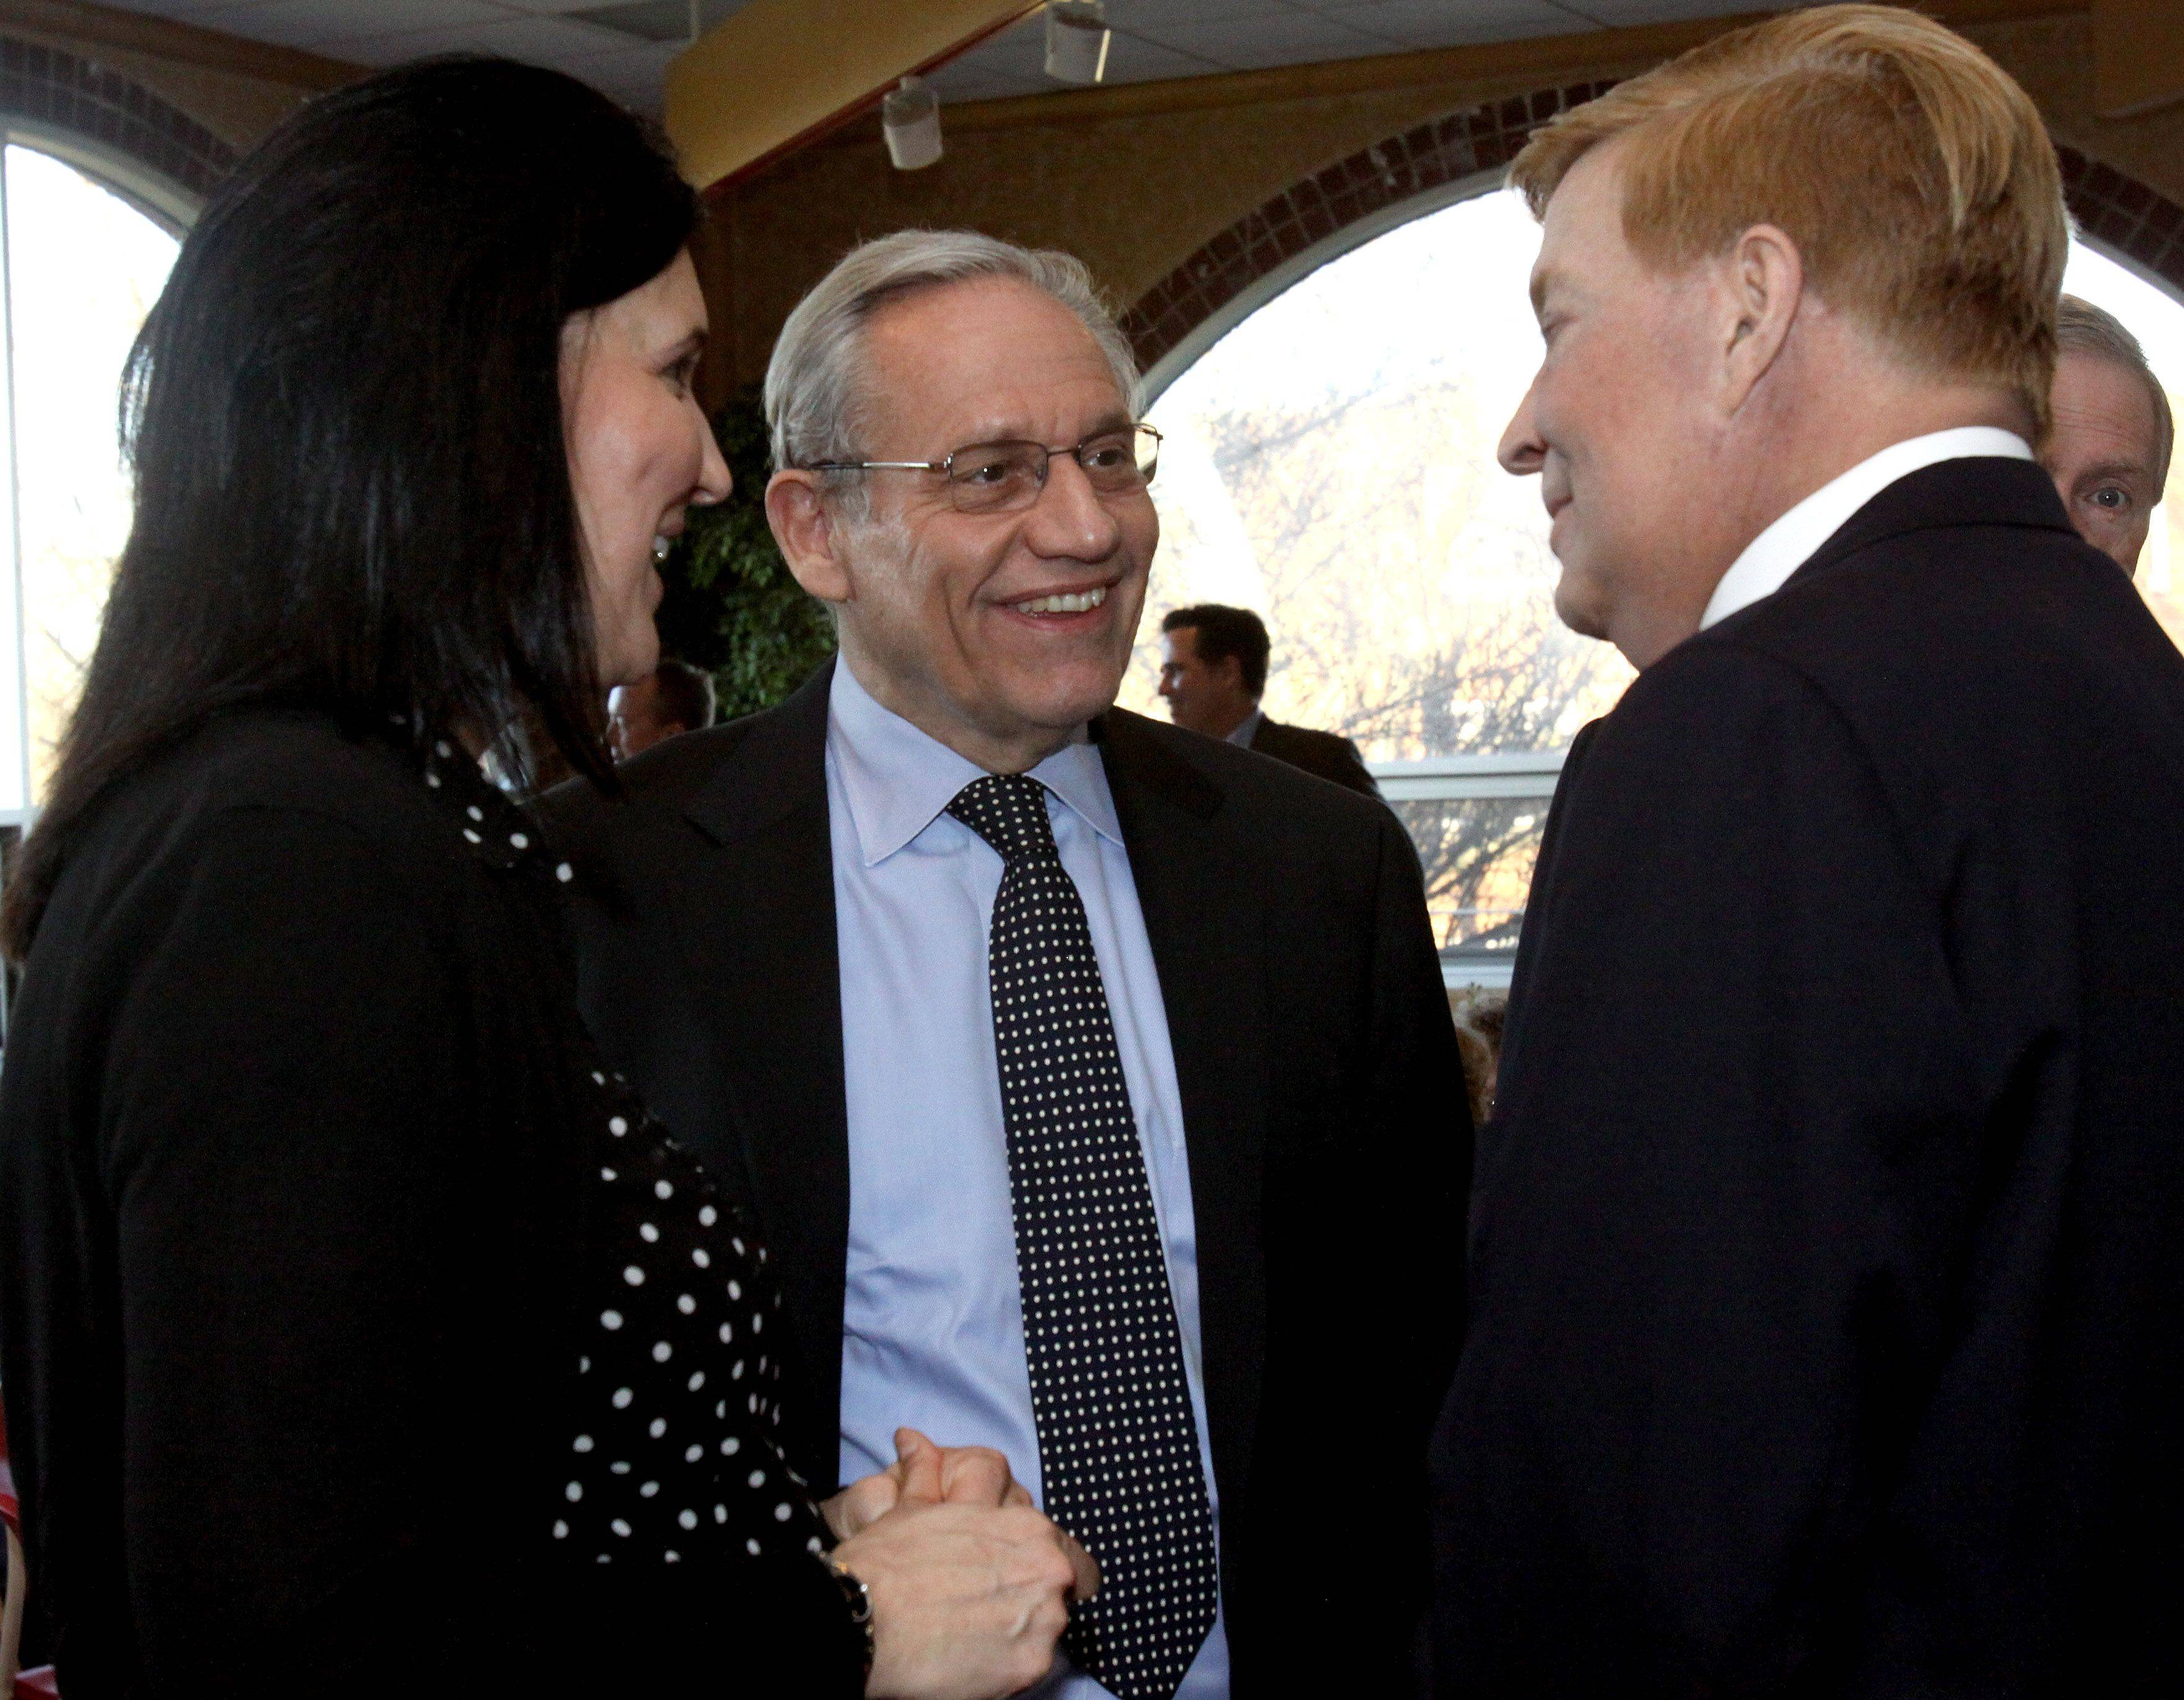 Bob Woodward, center, chats with Robert W. Fioretti, right, 2nd ward alderman in Chicago, and his friend Nicki Pecori, left, before giving a talk Tuesday at Benedictine University in Lisle.